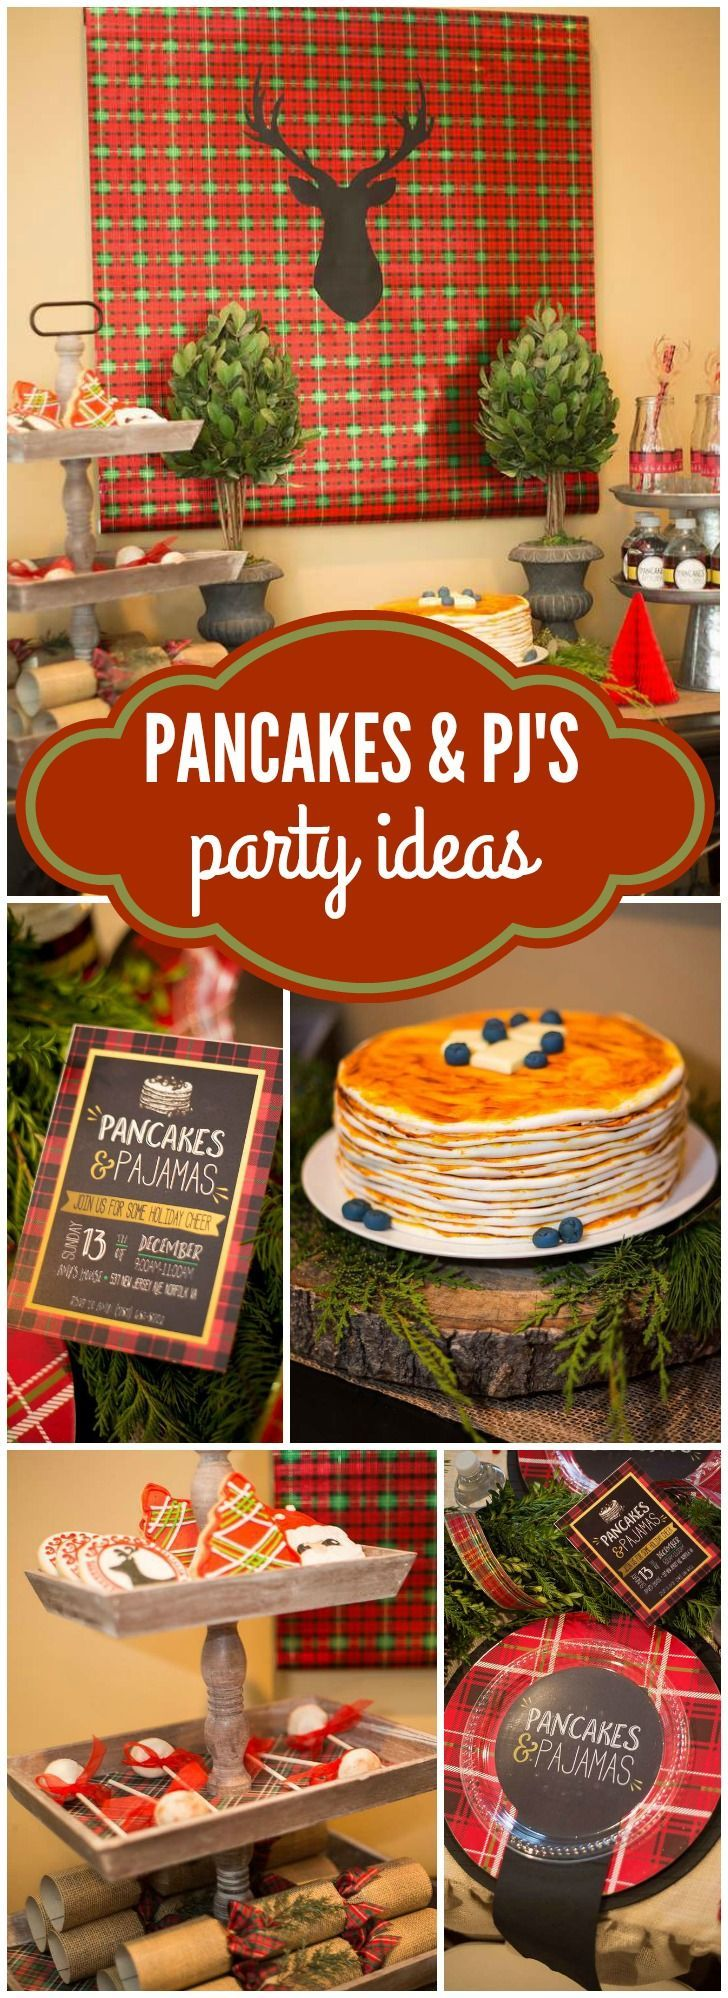 Christmas Party Work Ideas Part - 22: Check Out This Rustic Pancakes And Pajamas Party In Plaid And Burlap! See  More Party · Work Christmas Party IdeasHoliday ...